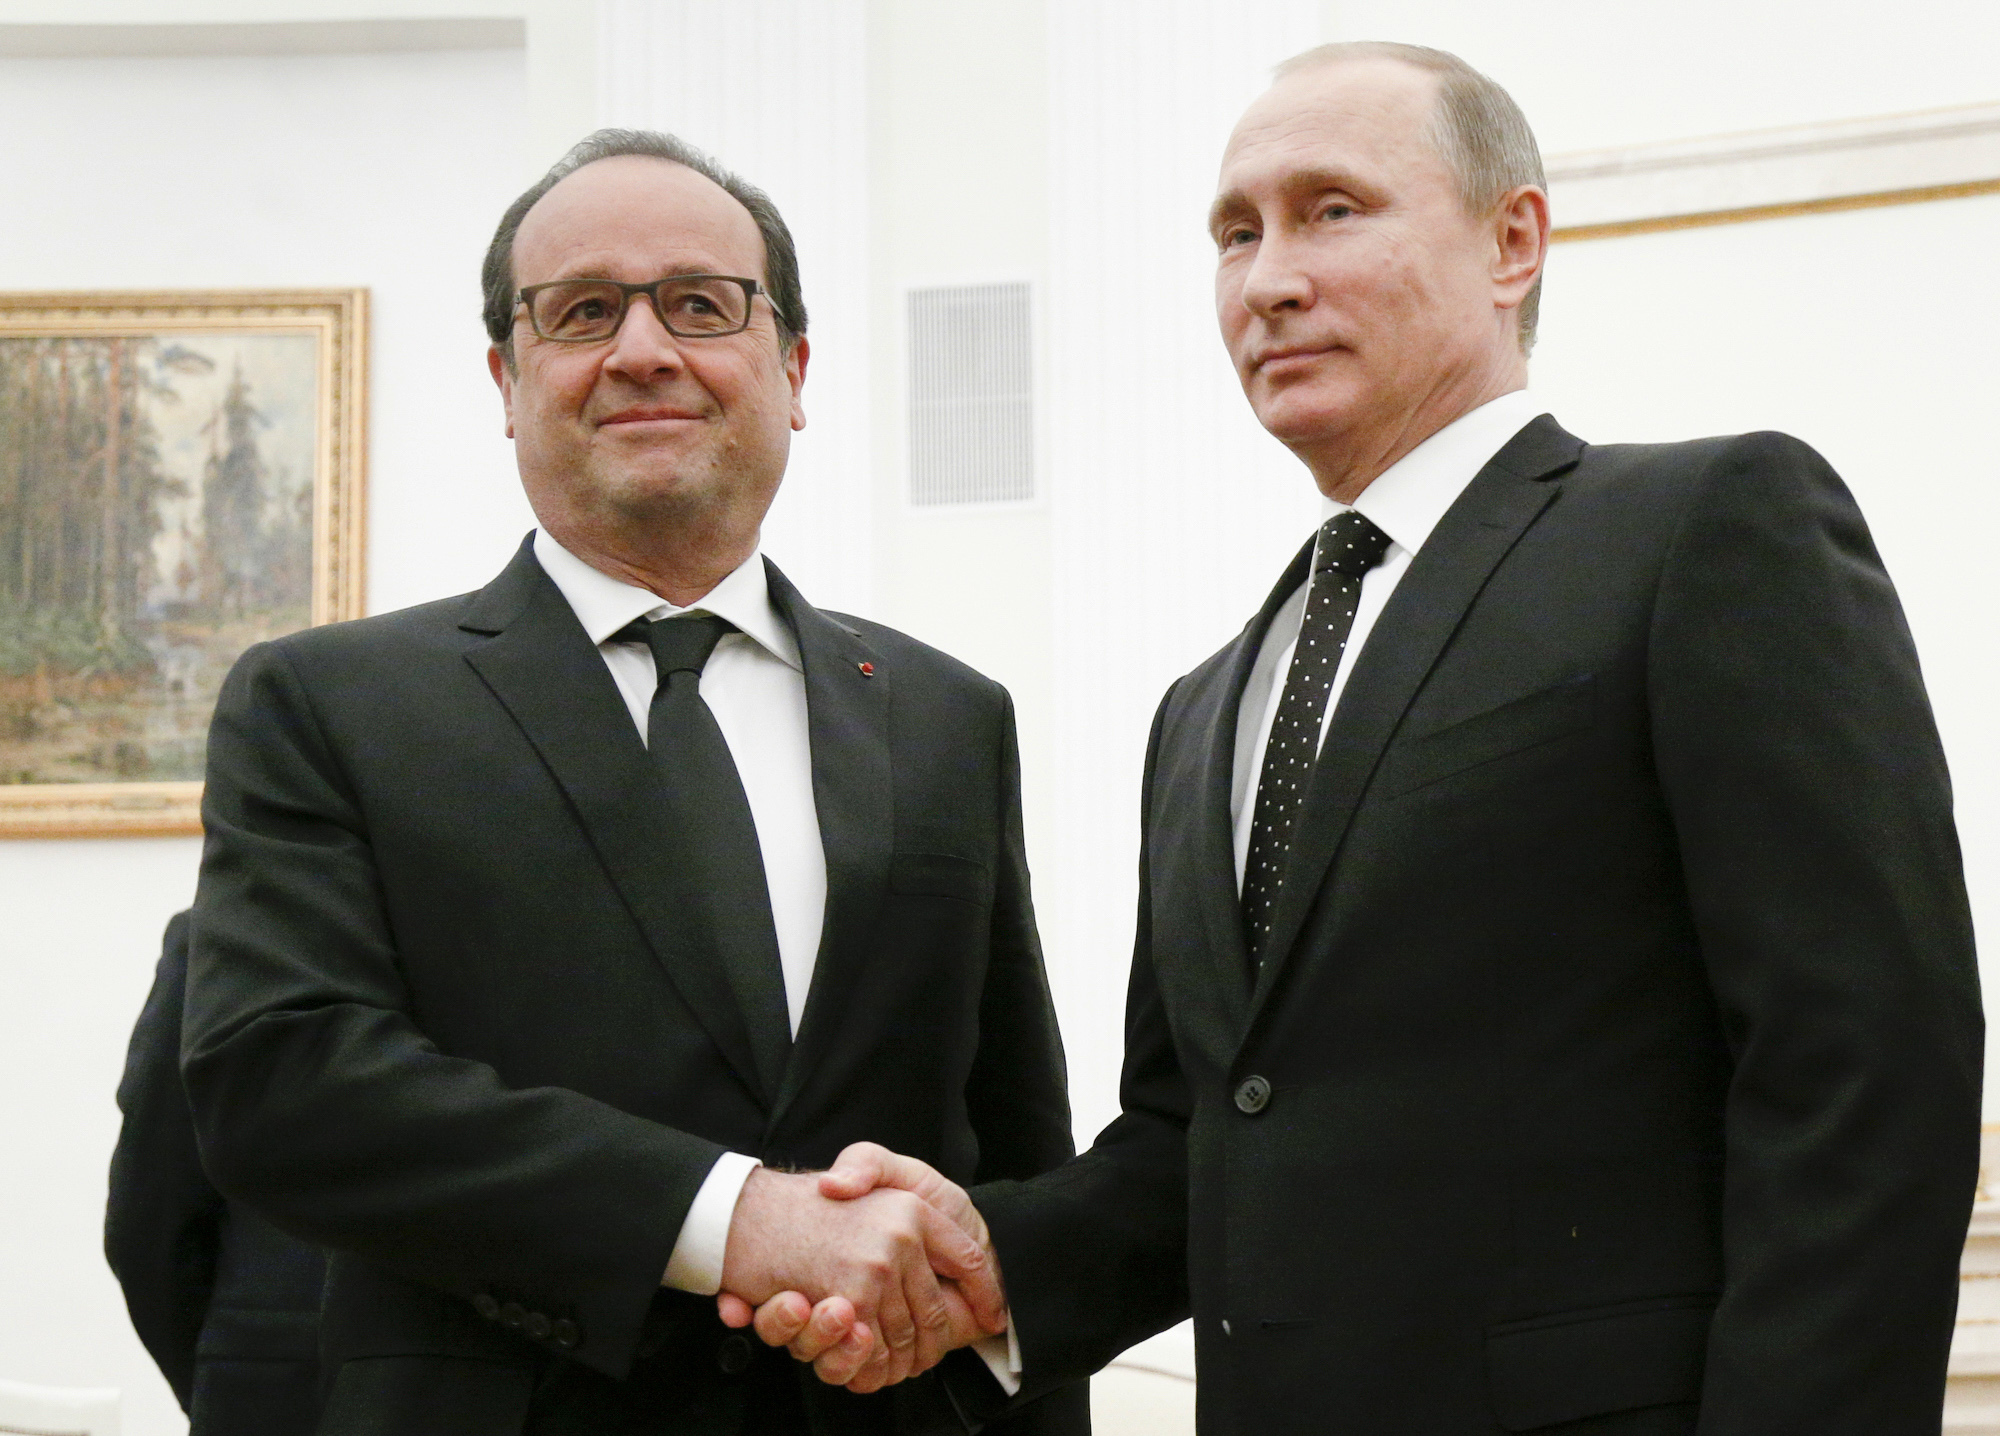 In this Thursday, Nov. 26, 2015 file photo, Russian President Vladimir Putin, right, shakes hands with his French counterpart Francois Hollande during their meeting in Moscow, Russia. (AP Photo/Alexander Zemlianichenko, Pool, File)